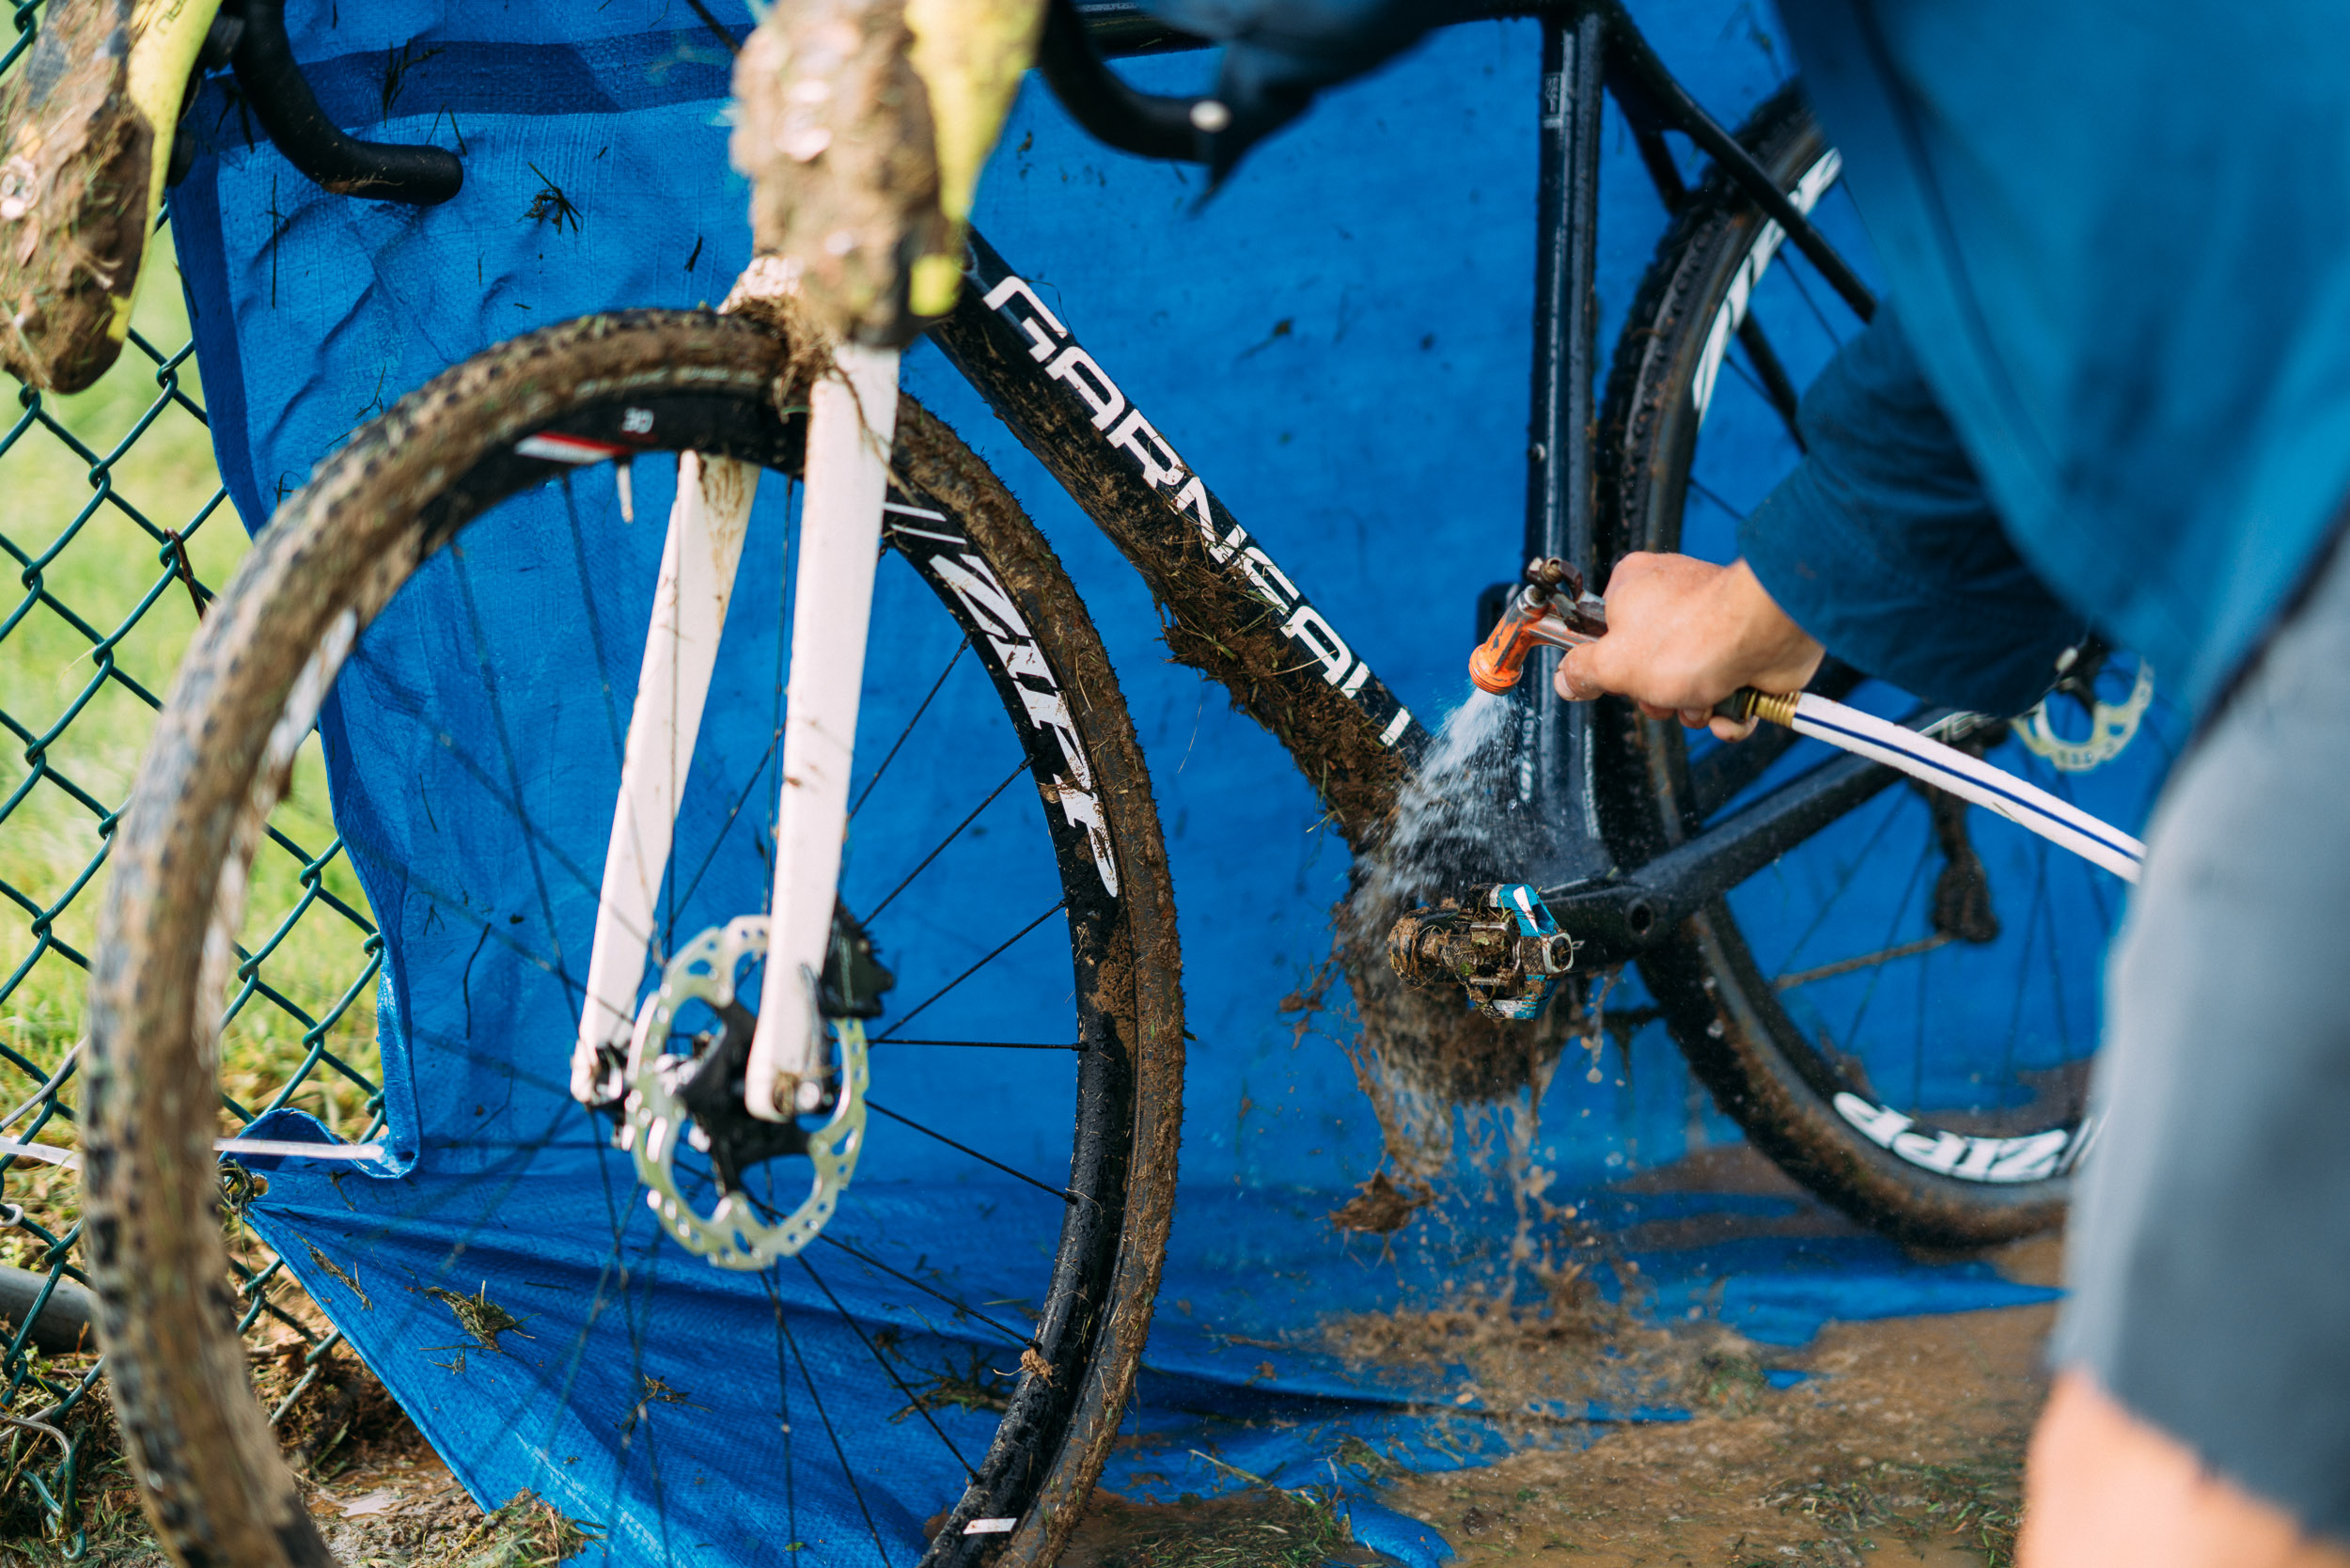 photo-rhetoric-to-be-determined-nittany-cyclocross-1014.jpg